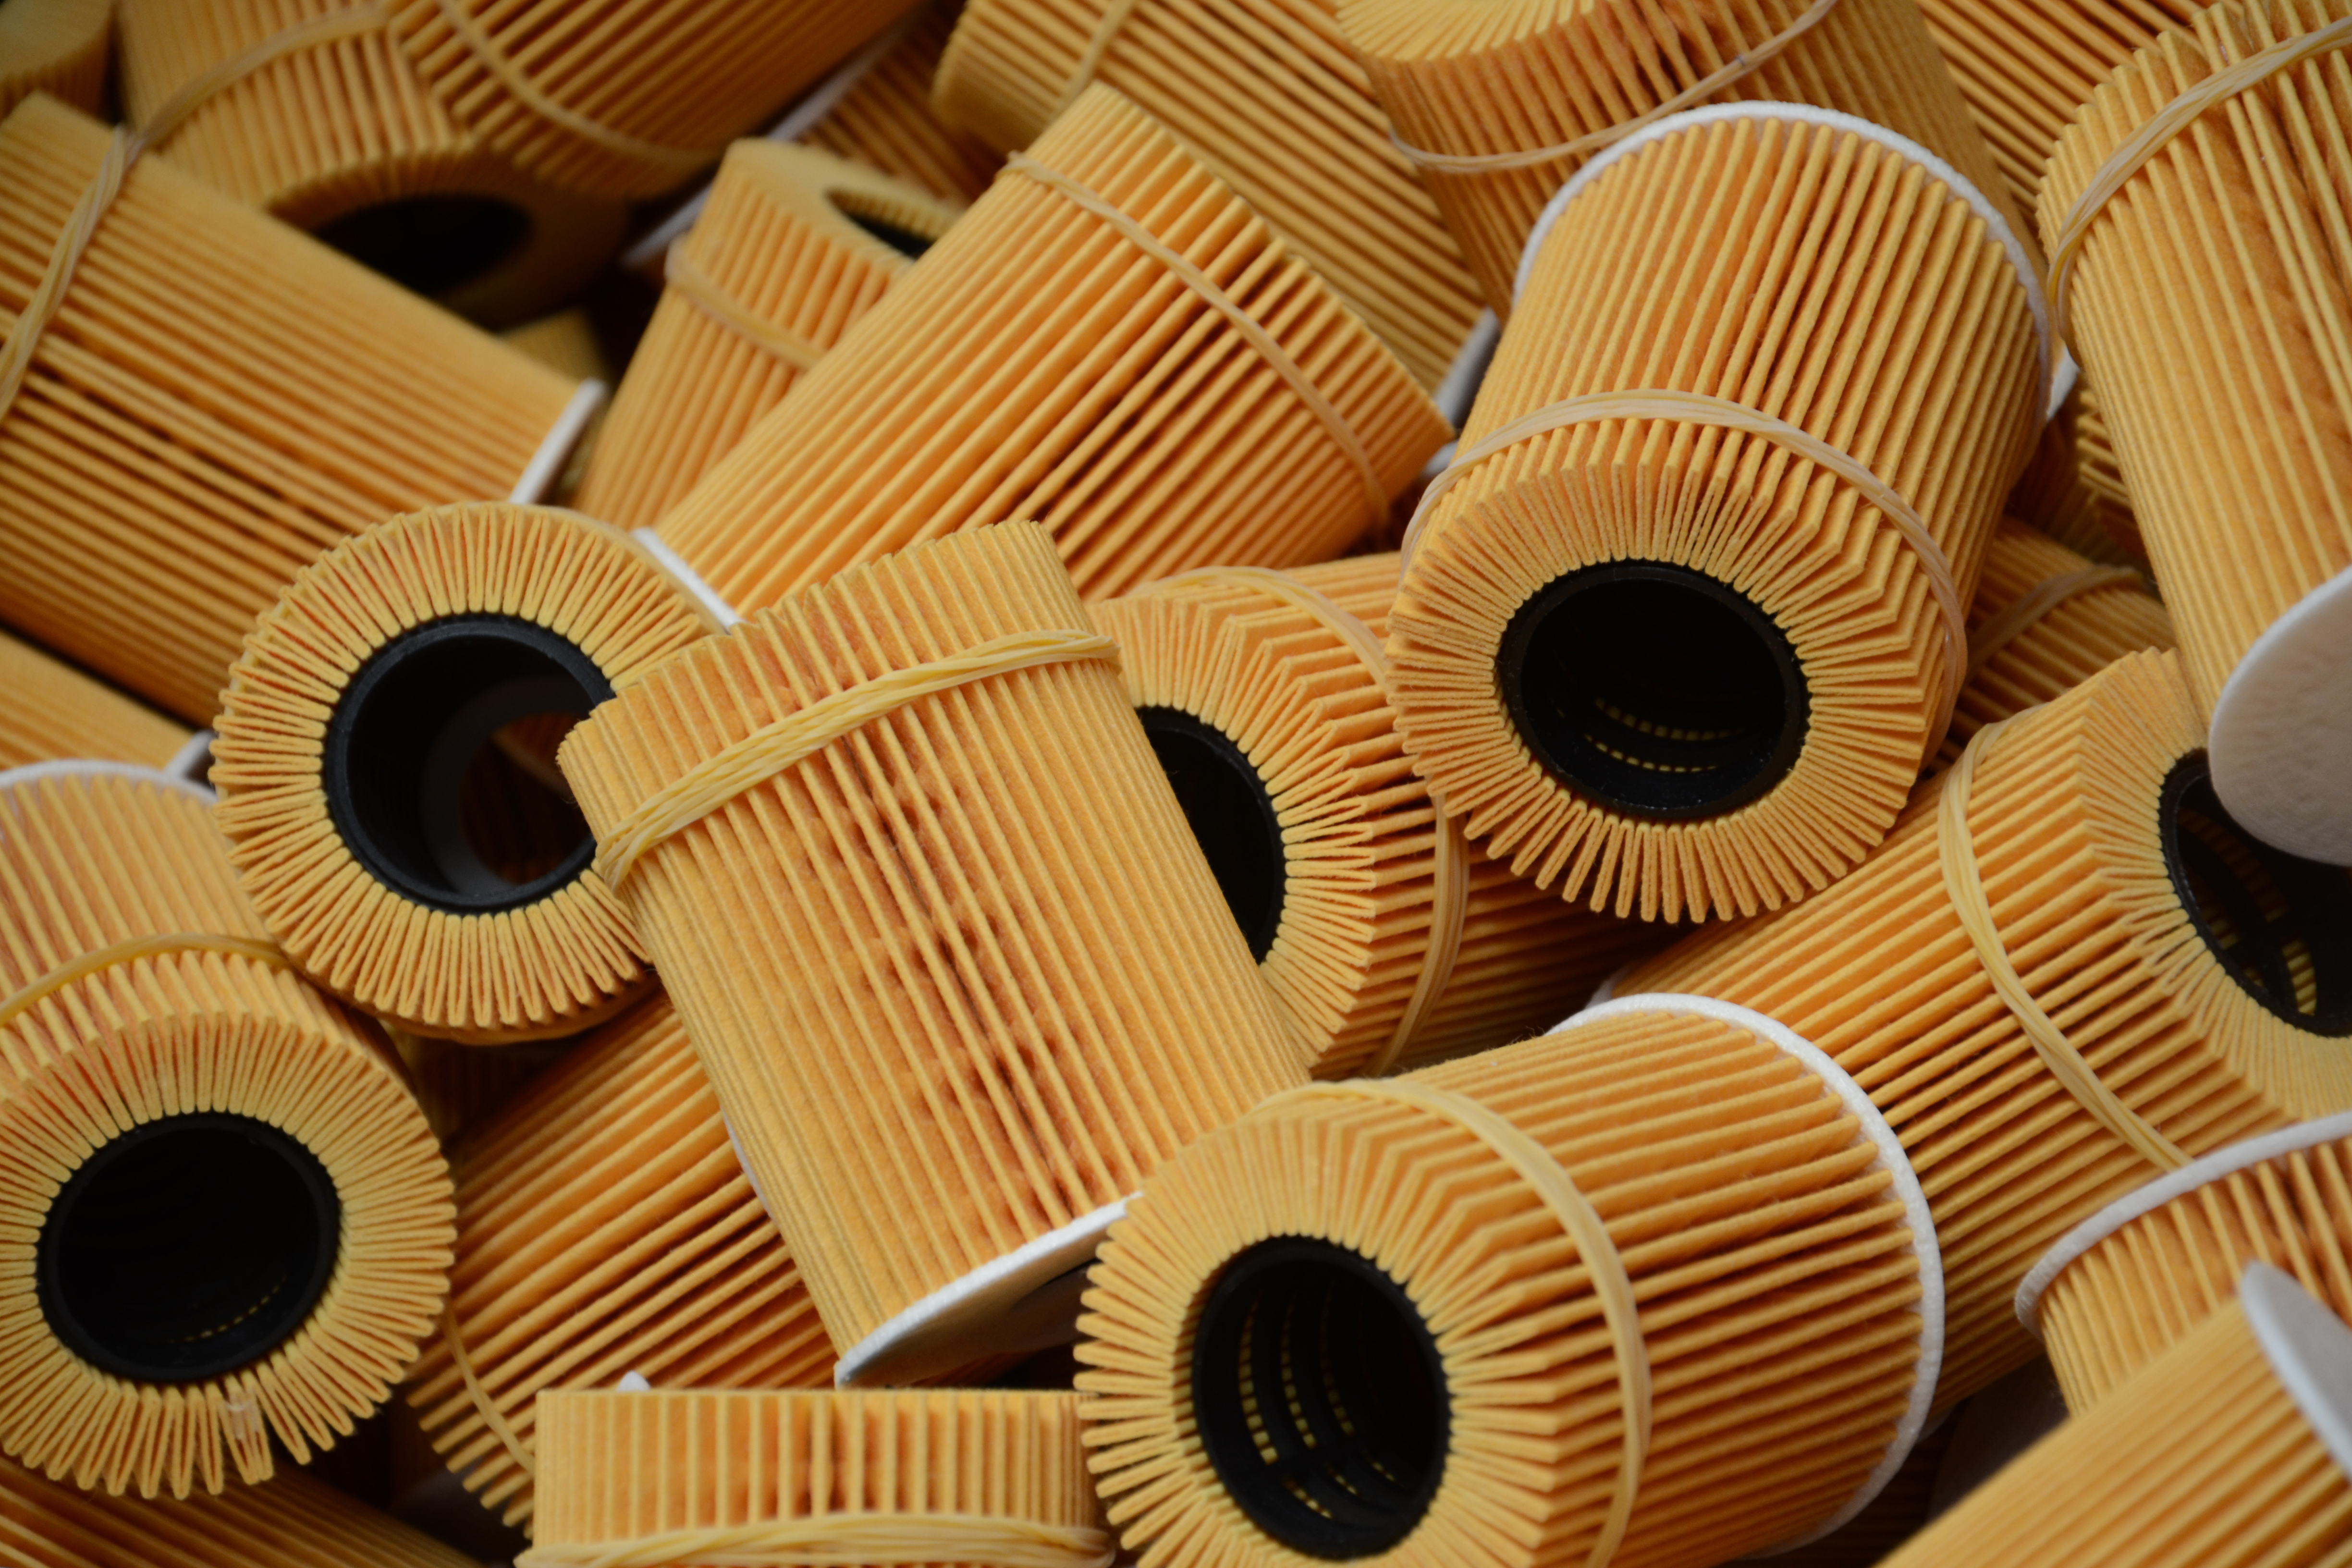 The importance of filter paper in the filter